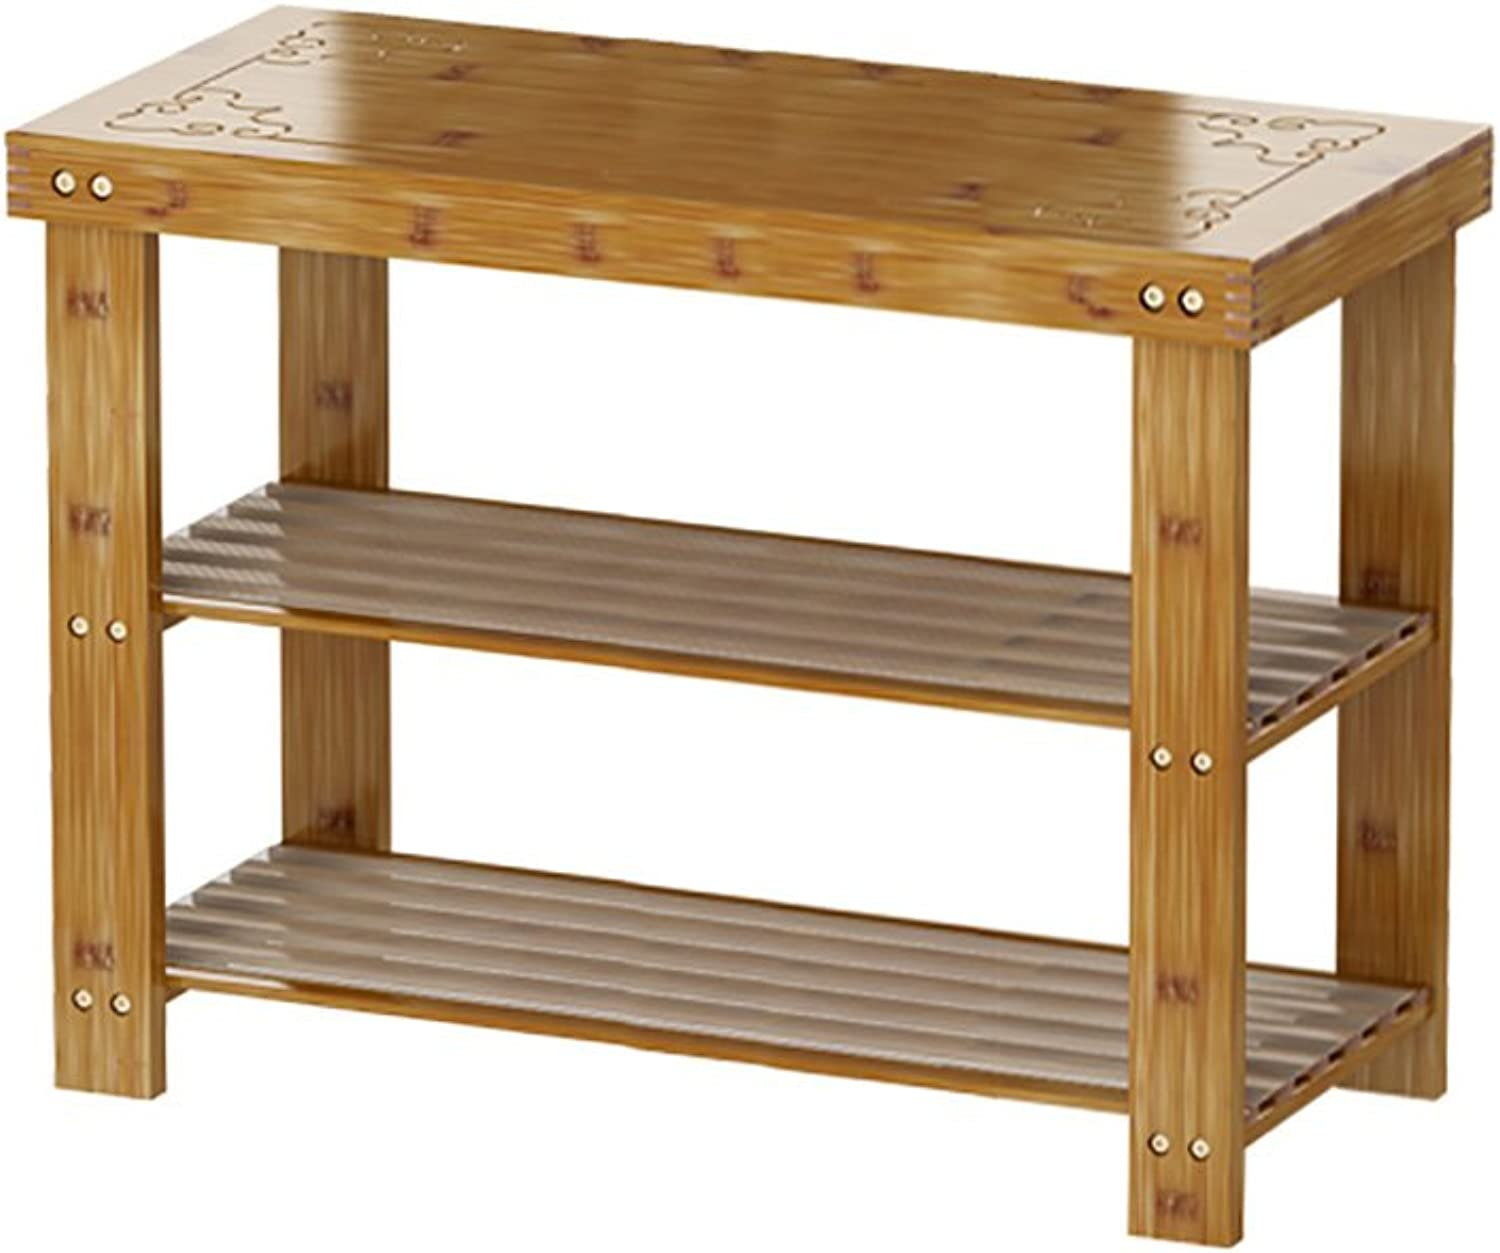 shoes Rack, 2-Layer Natural Bamboo shoes Rack, shoes Bench, Suitable Bathroom, Living Room, Bedroom Hallway (Size   45  28  40cm)